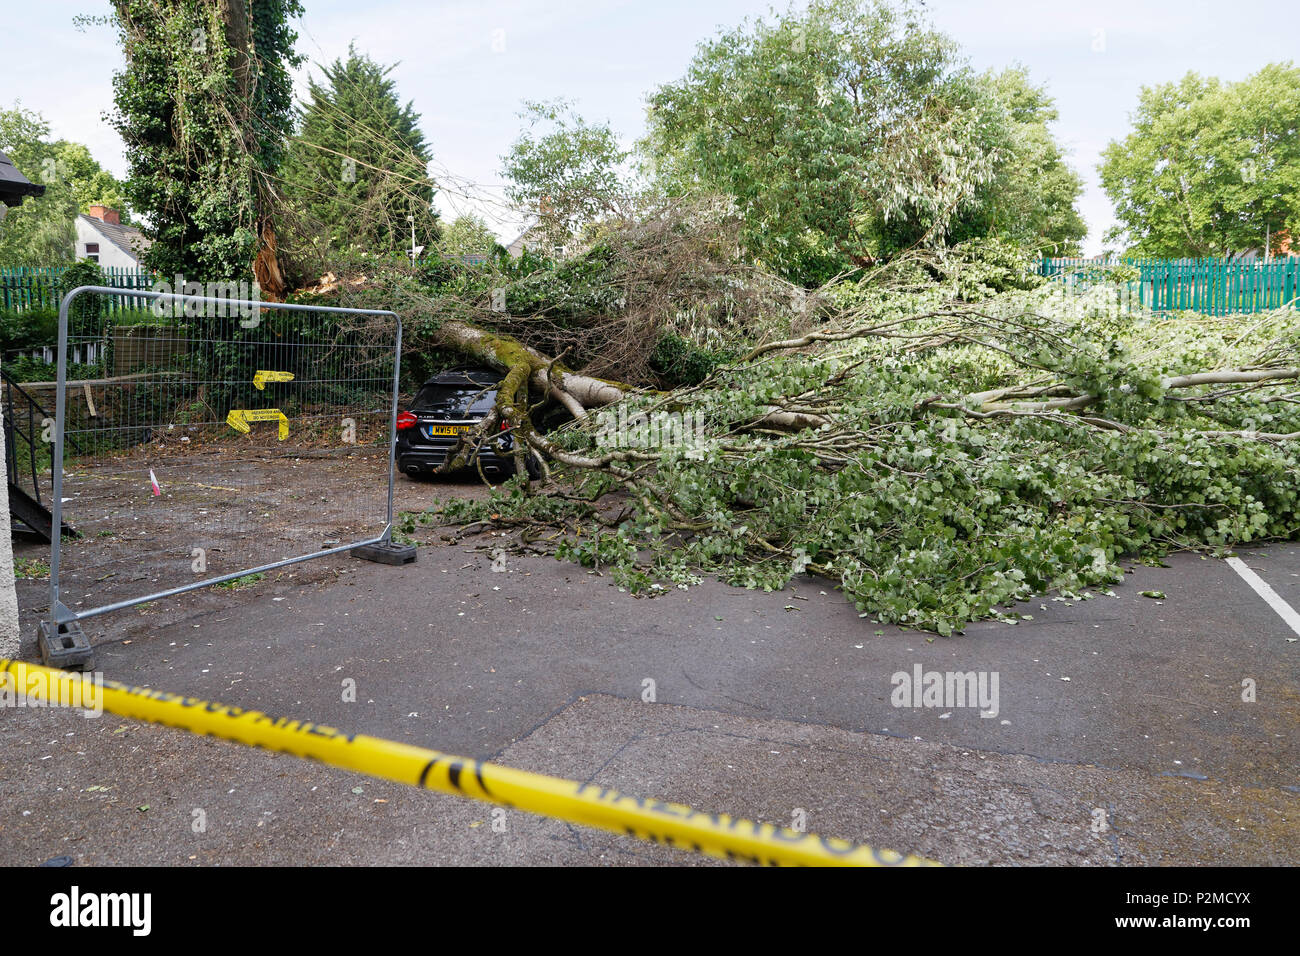 Pictured: The Mercedes GLA220 car which has been crushed by a tree in Cardiff, Wales, UK. Friday 15 June 2018 Re: A large tree has fallen and crushed  Stock Photo